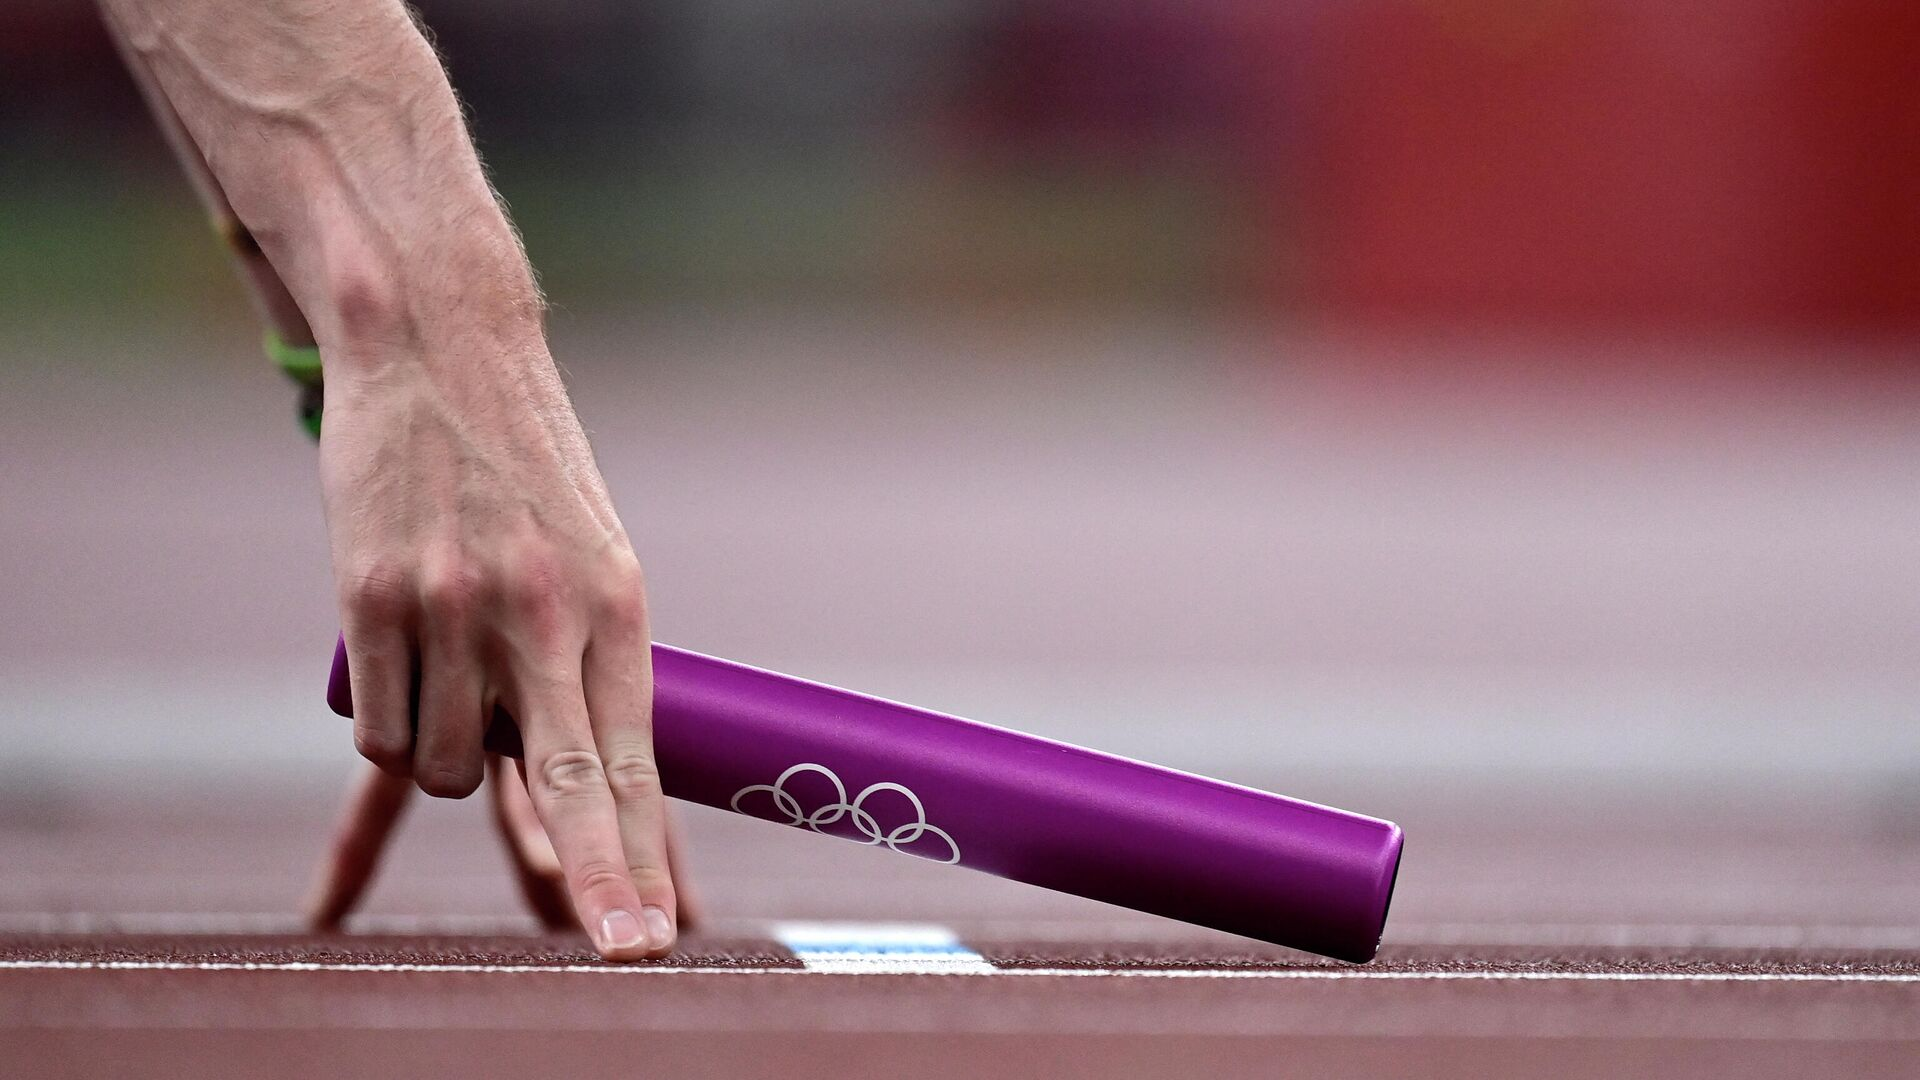 An athlete holds a relay baton ahead of the mixed 4x400m relay heats during the Tokyo 2020 Olympic Games at the Olympic Stadium in Tokyo on July 30, 2021. (Photo by Javier SORIANO / AFP) - РИА Новости, 1920, 30.07.2021